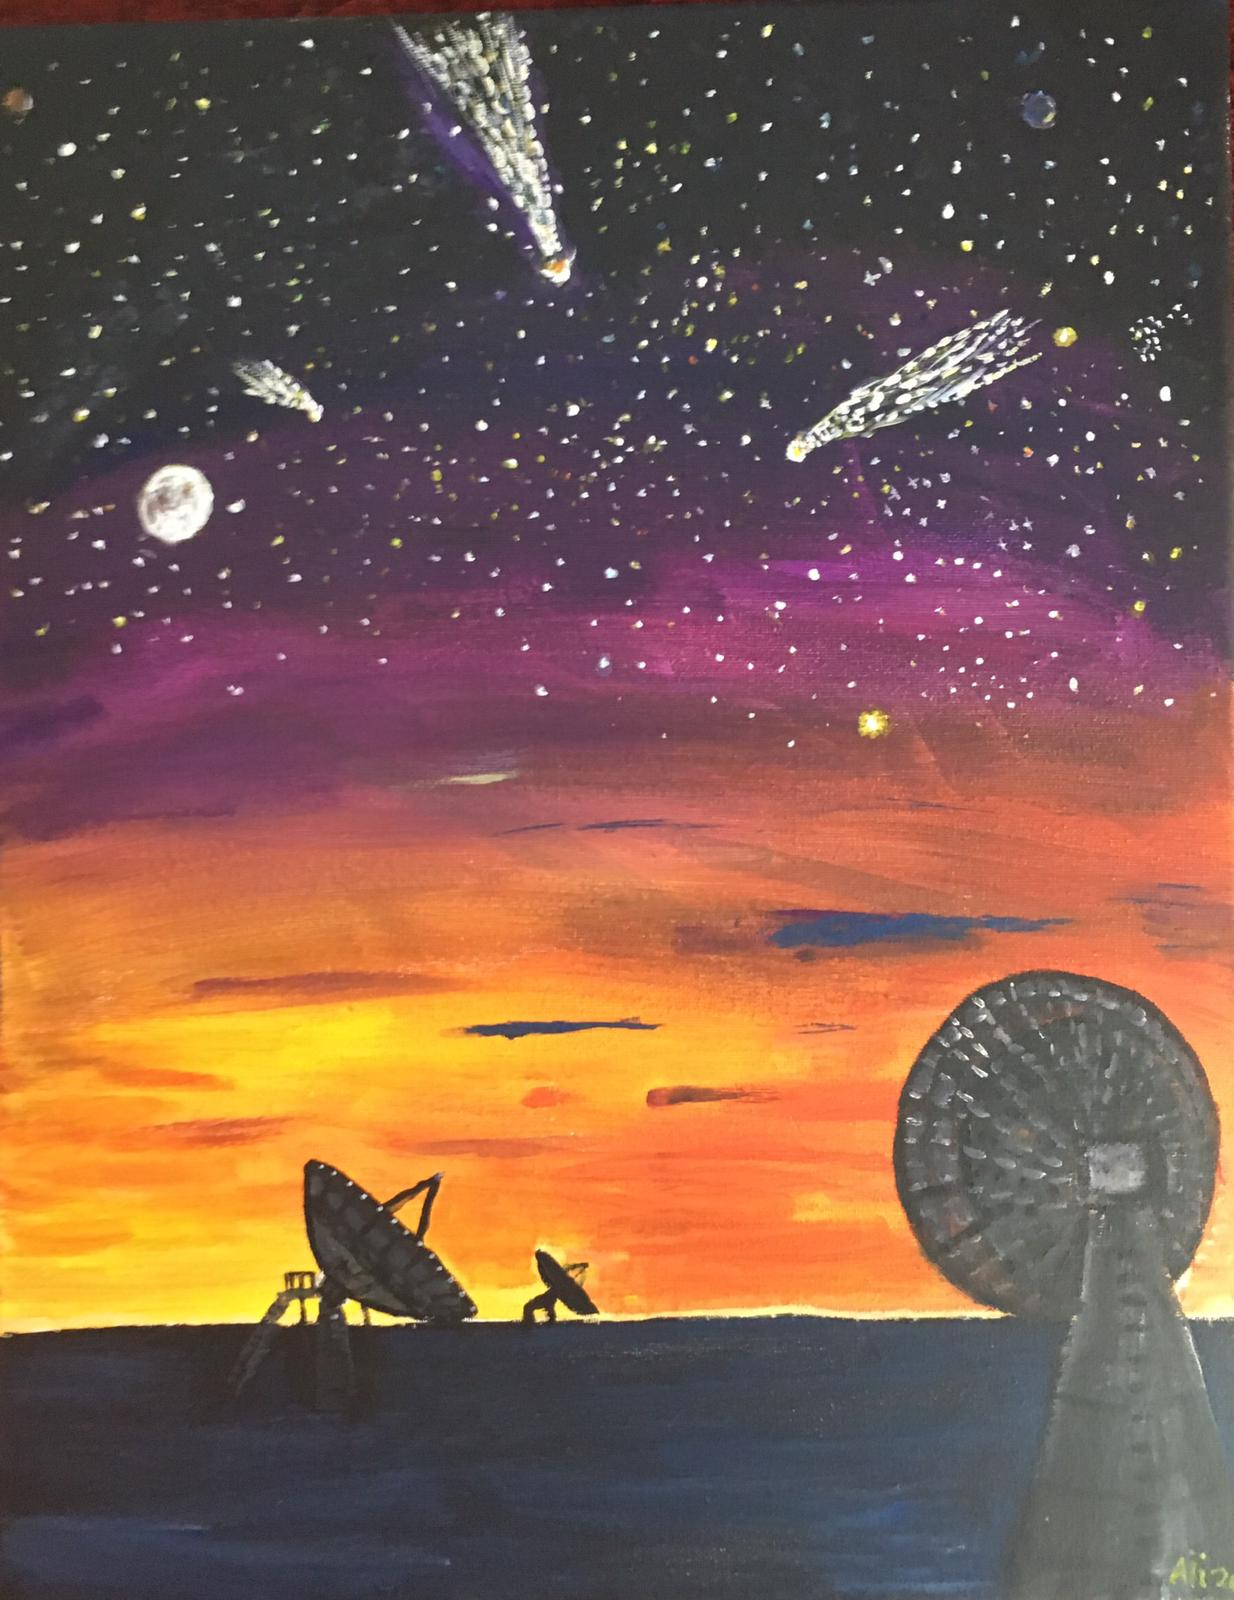 Painting of Goonhilly earth station at night